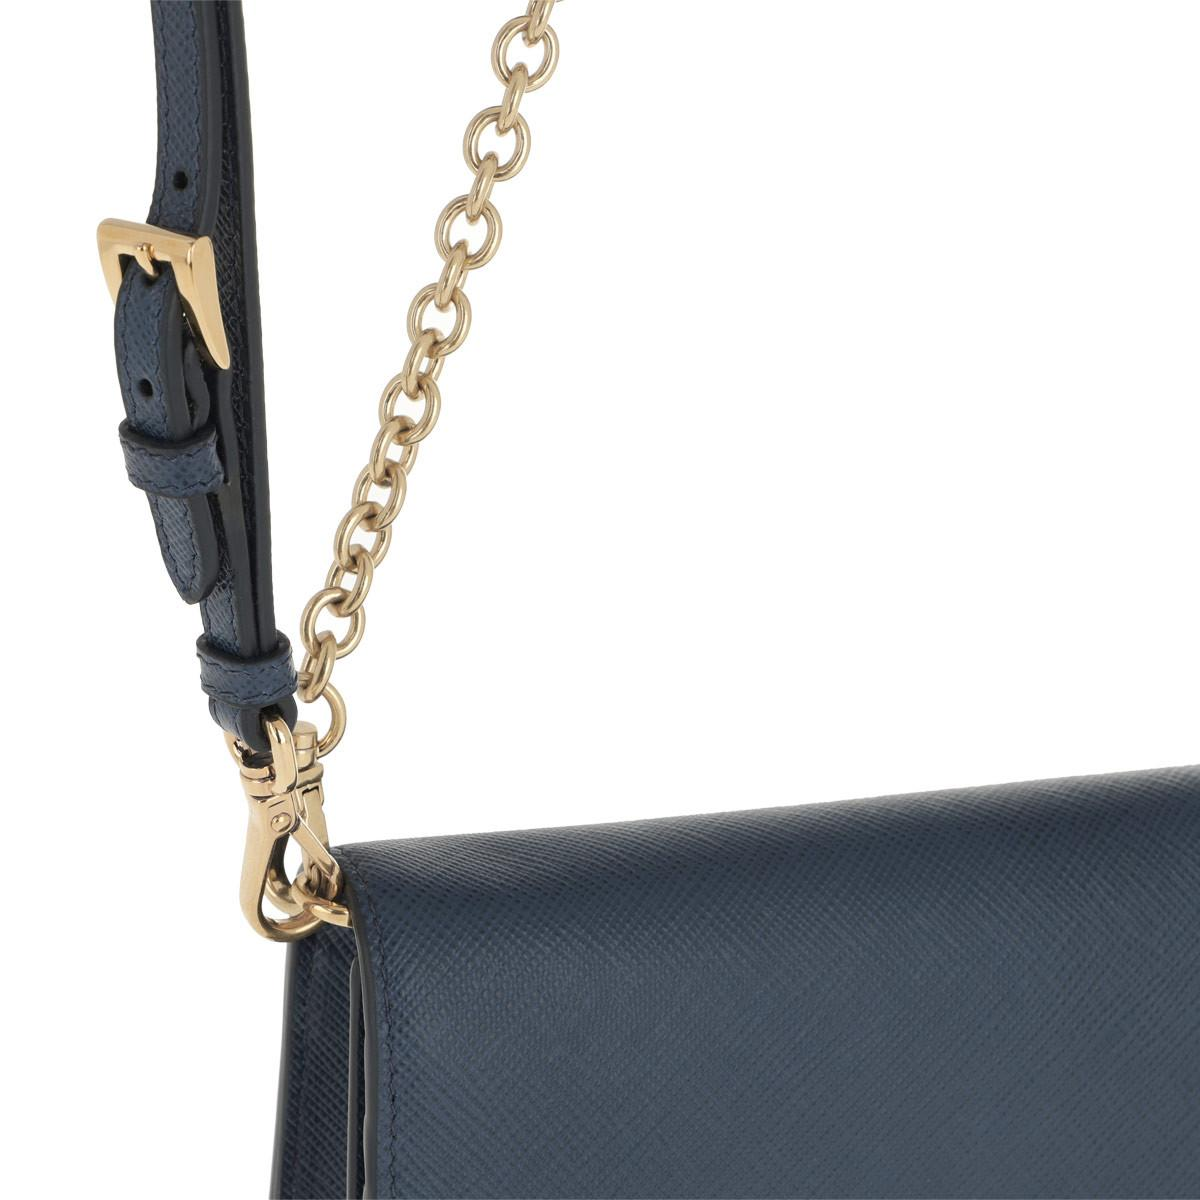 5d73cd009c05 Prada - Logo Wallet On Chain Saffiano Leather Bluette - Lyst. View  fullscreen